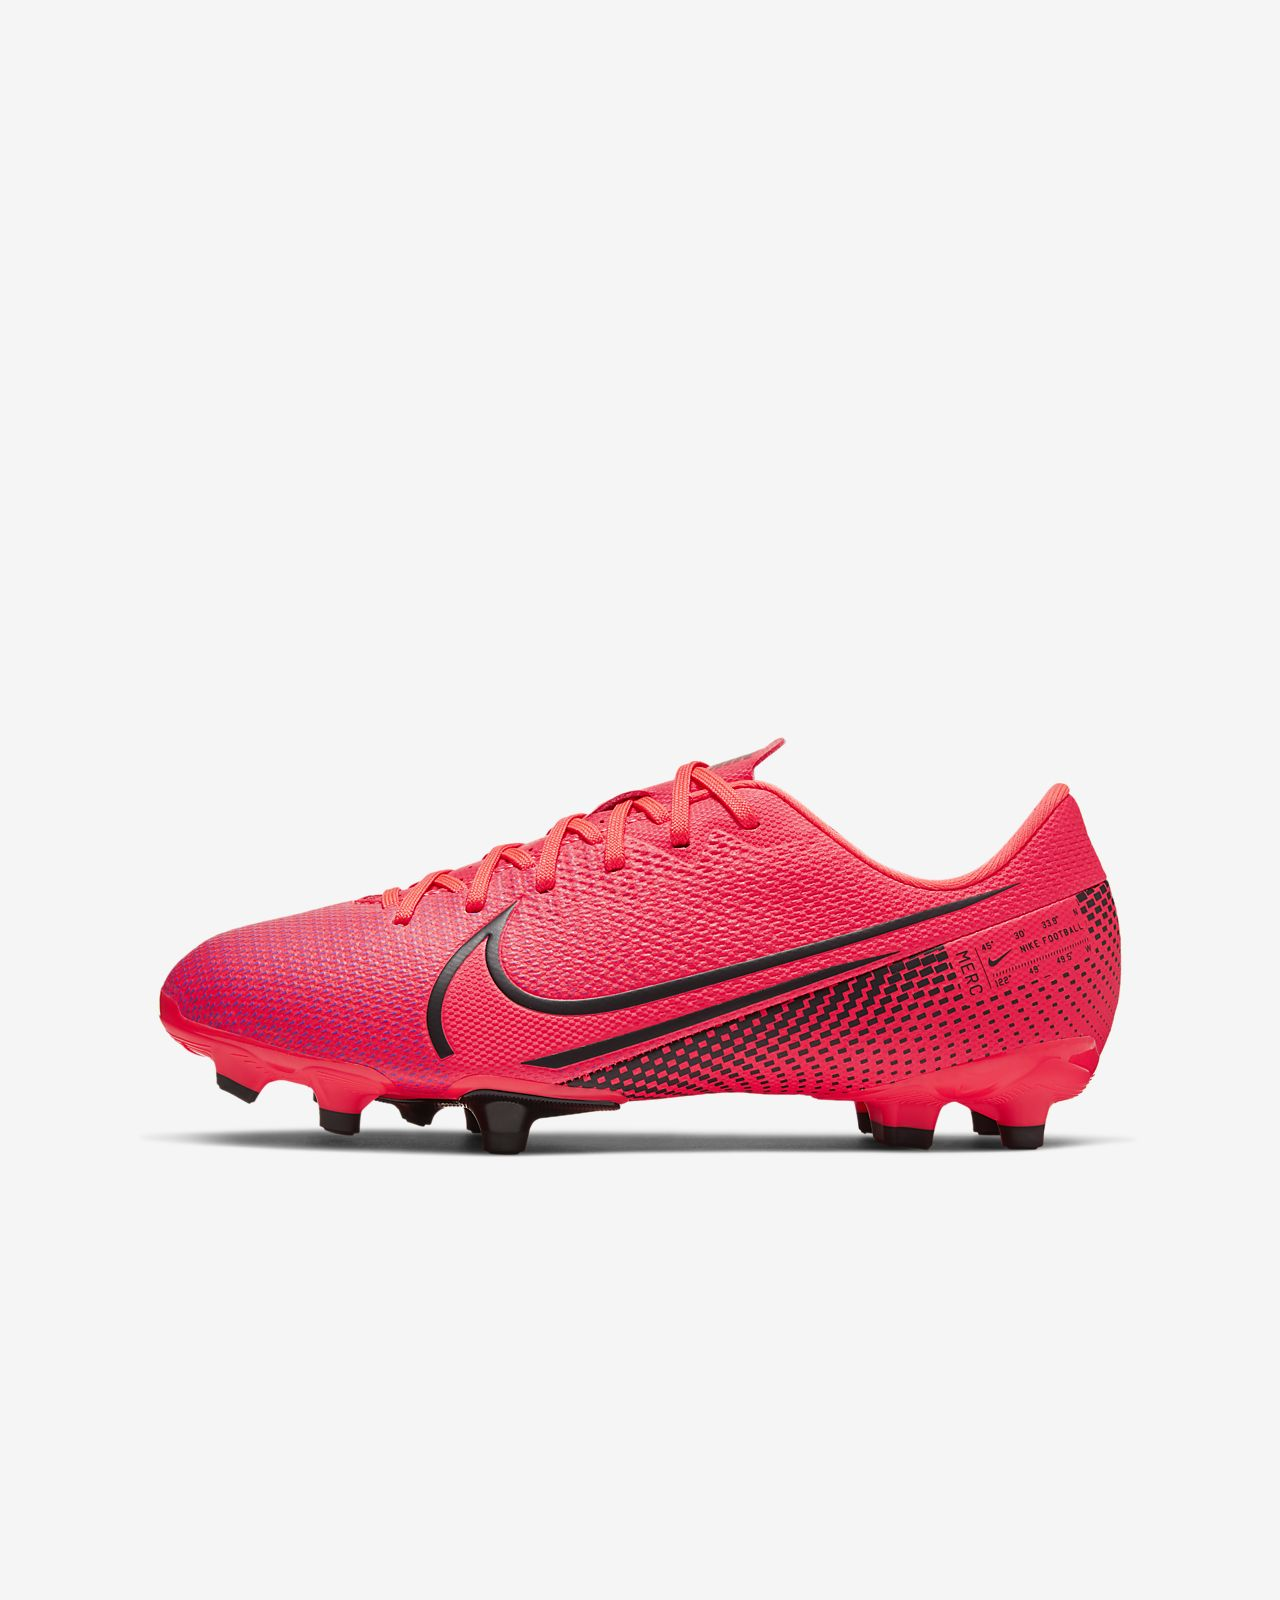 Scarpa da calcio multiterreno Nike Jr. Mercurial Vapor 13 Academy MG Bambini